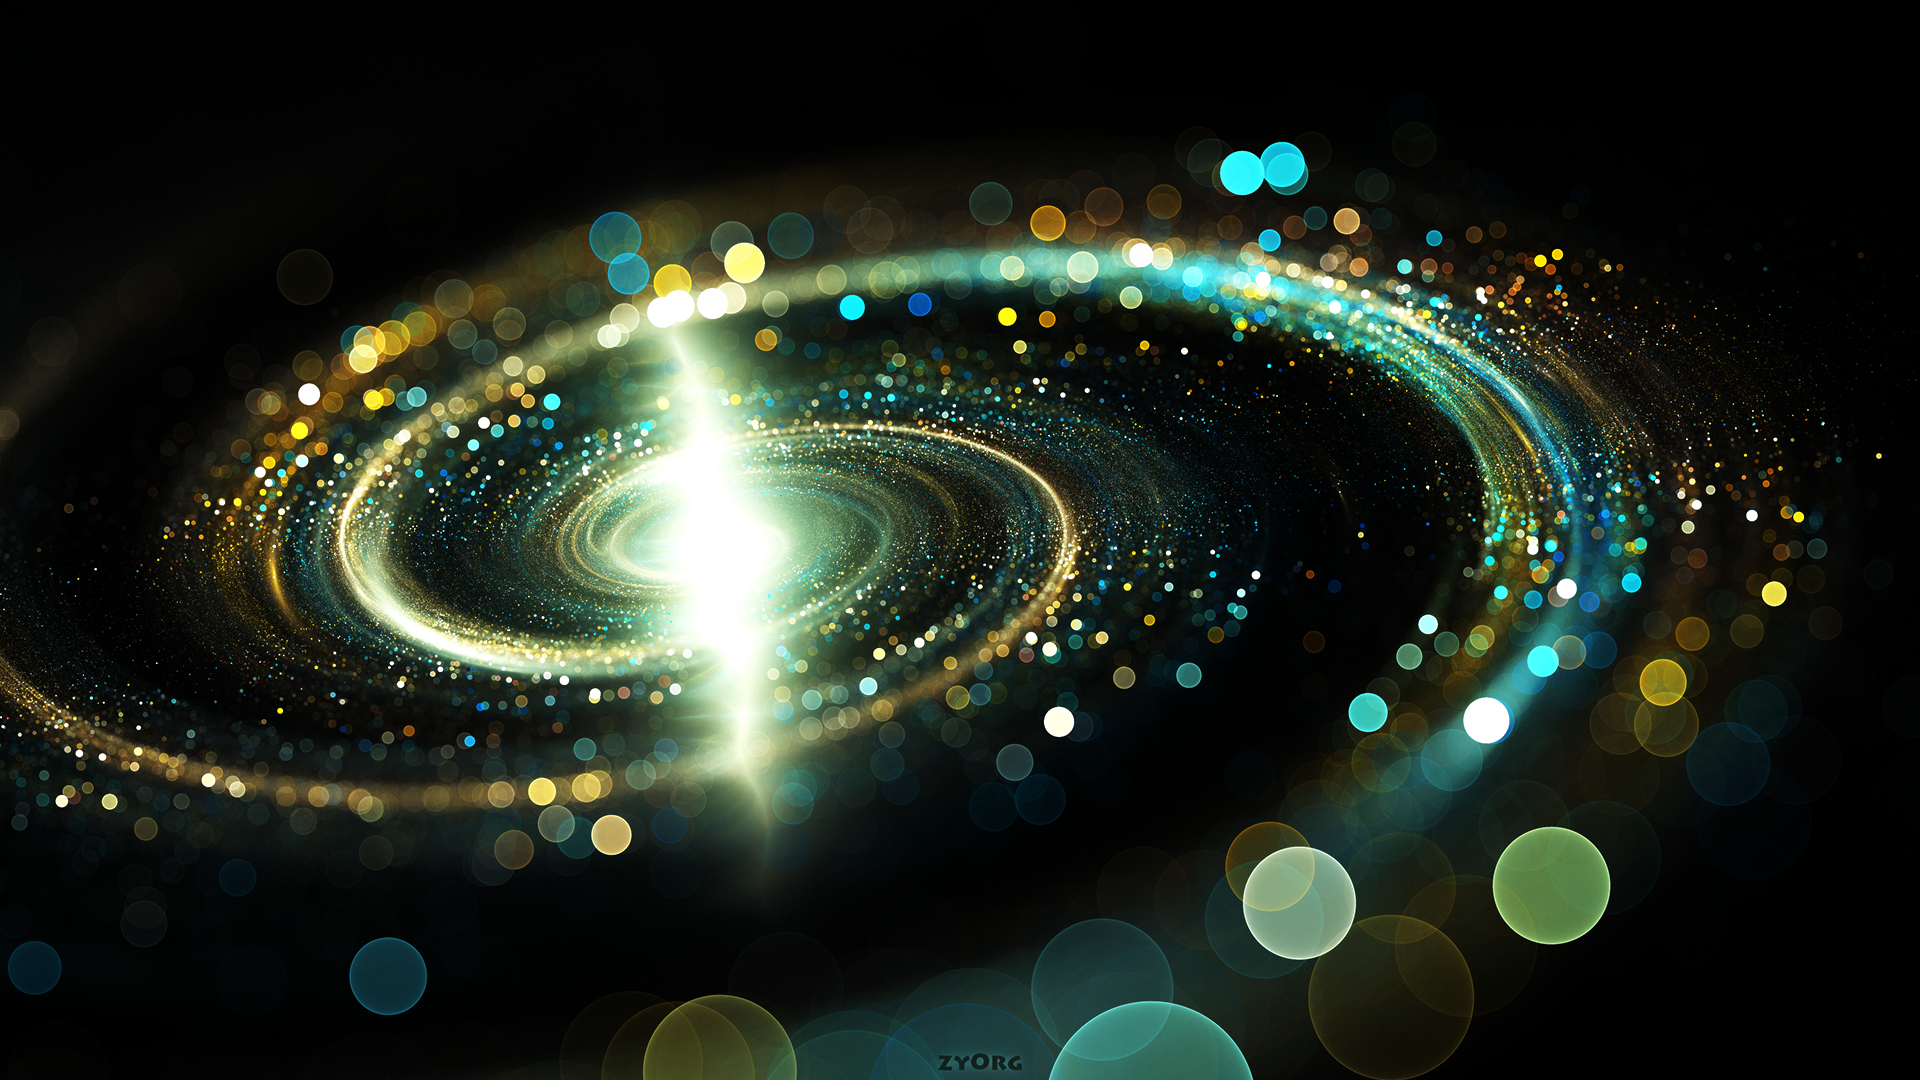 Spiral galaxy in space wallpapers and images wallpapers